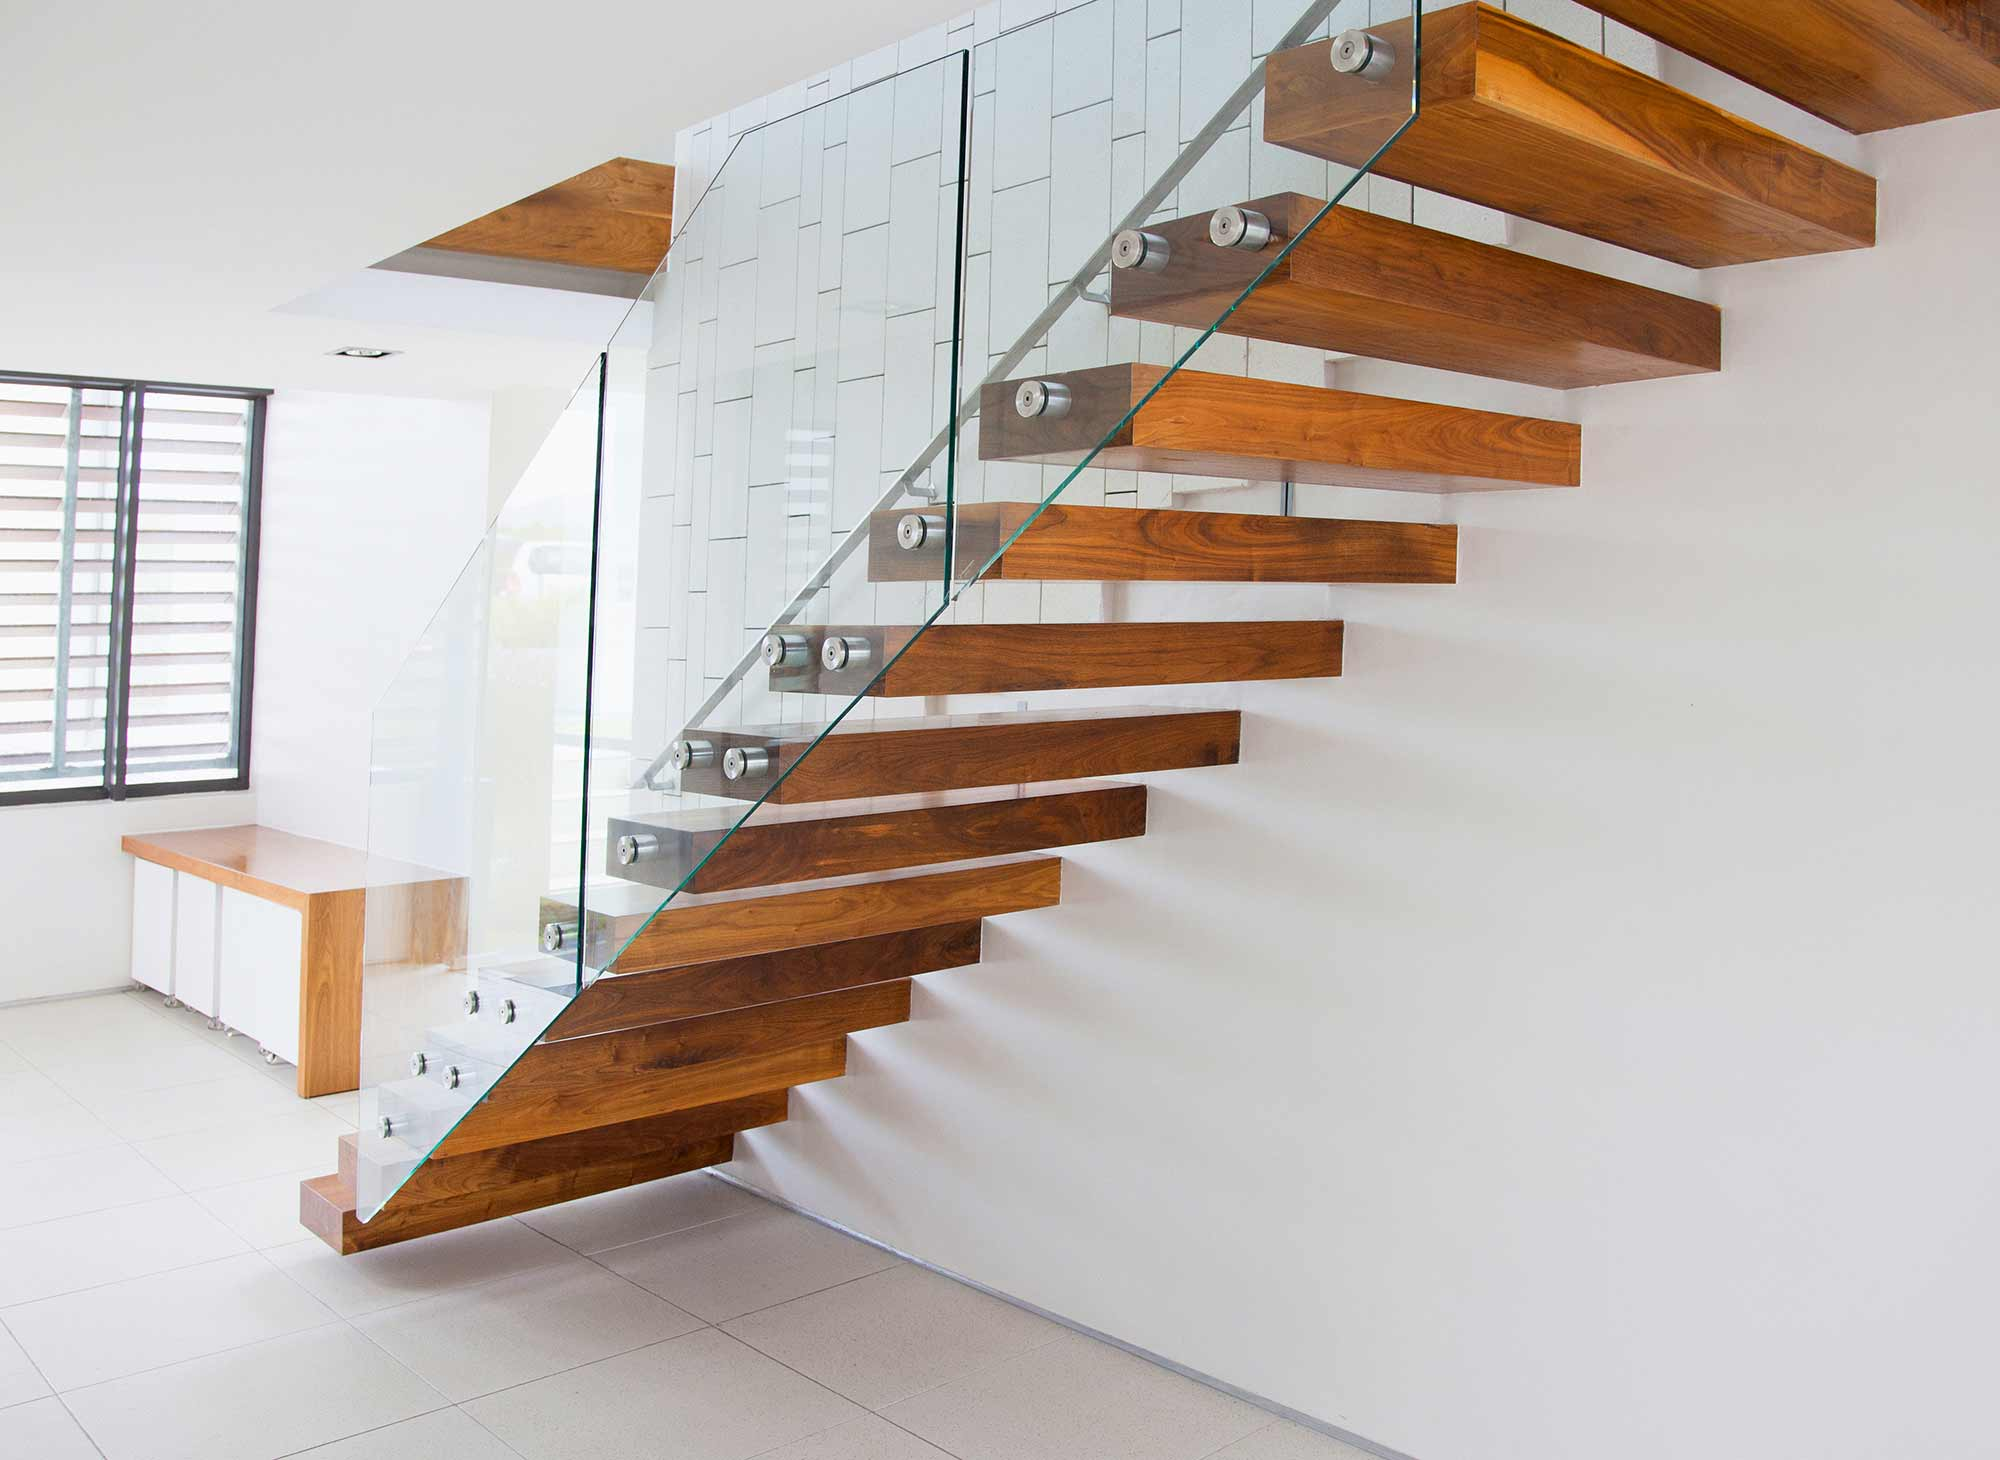 Beautiful Custom Wood Stair Treads Handcrafted in Pennsylvania with Metal Bolts and a Glass Railing